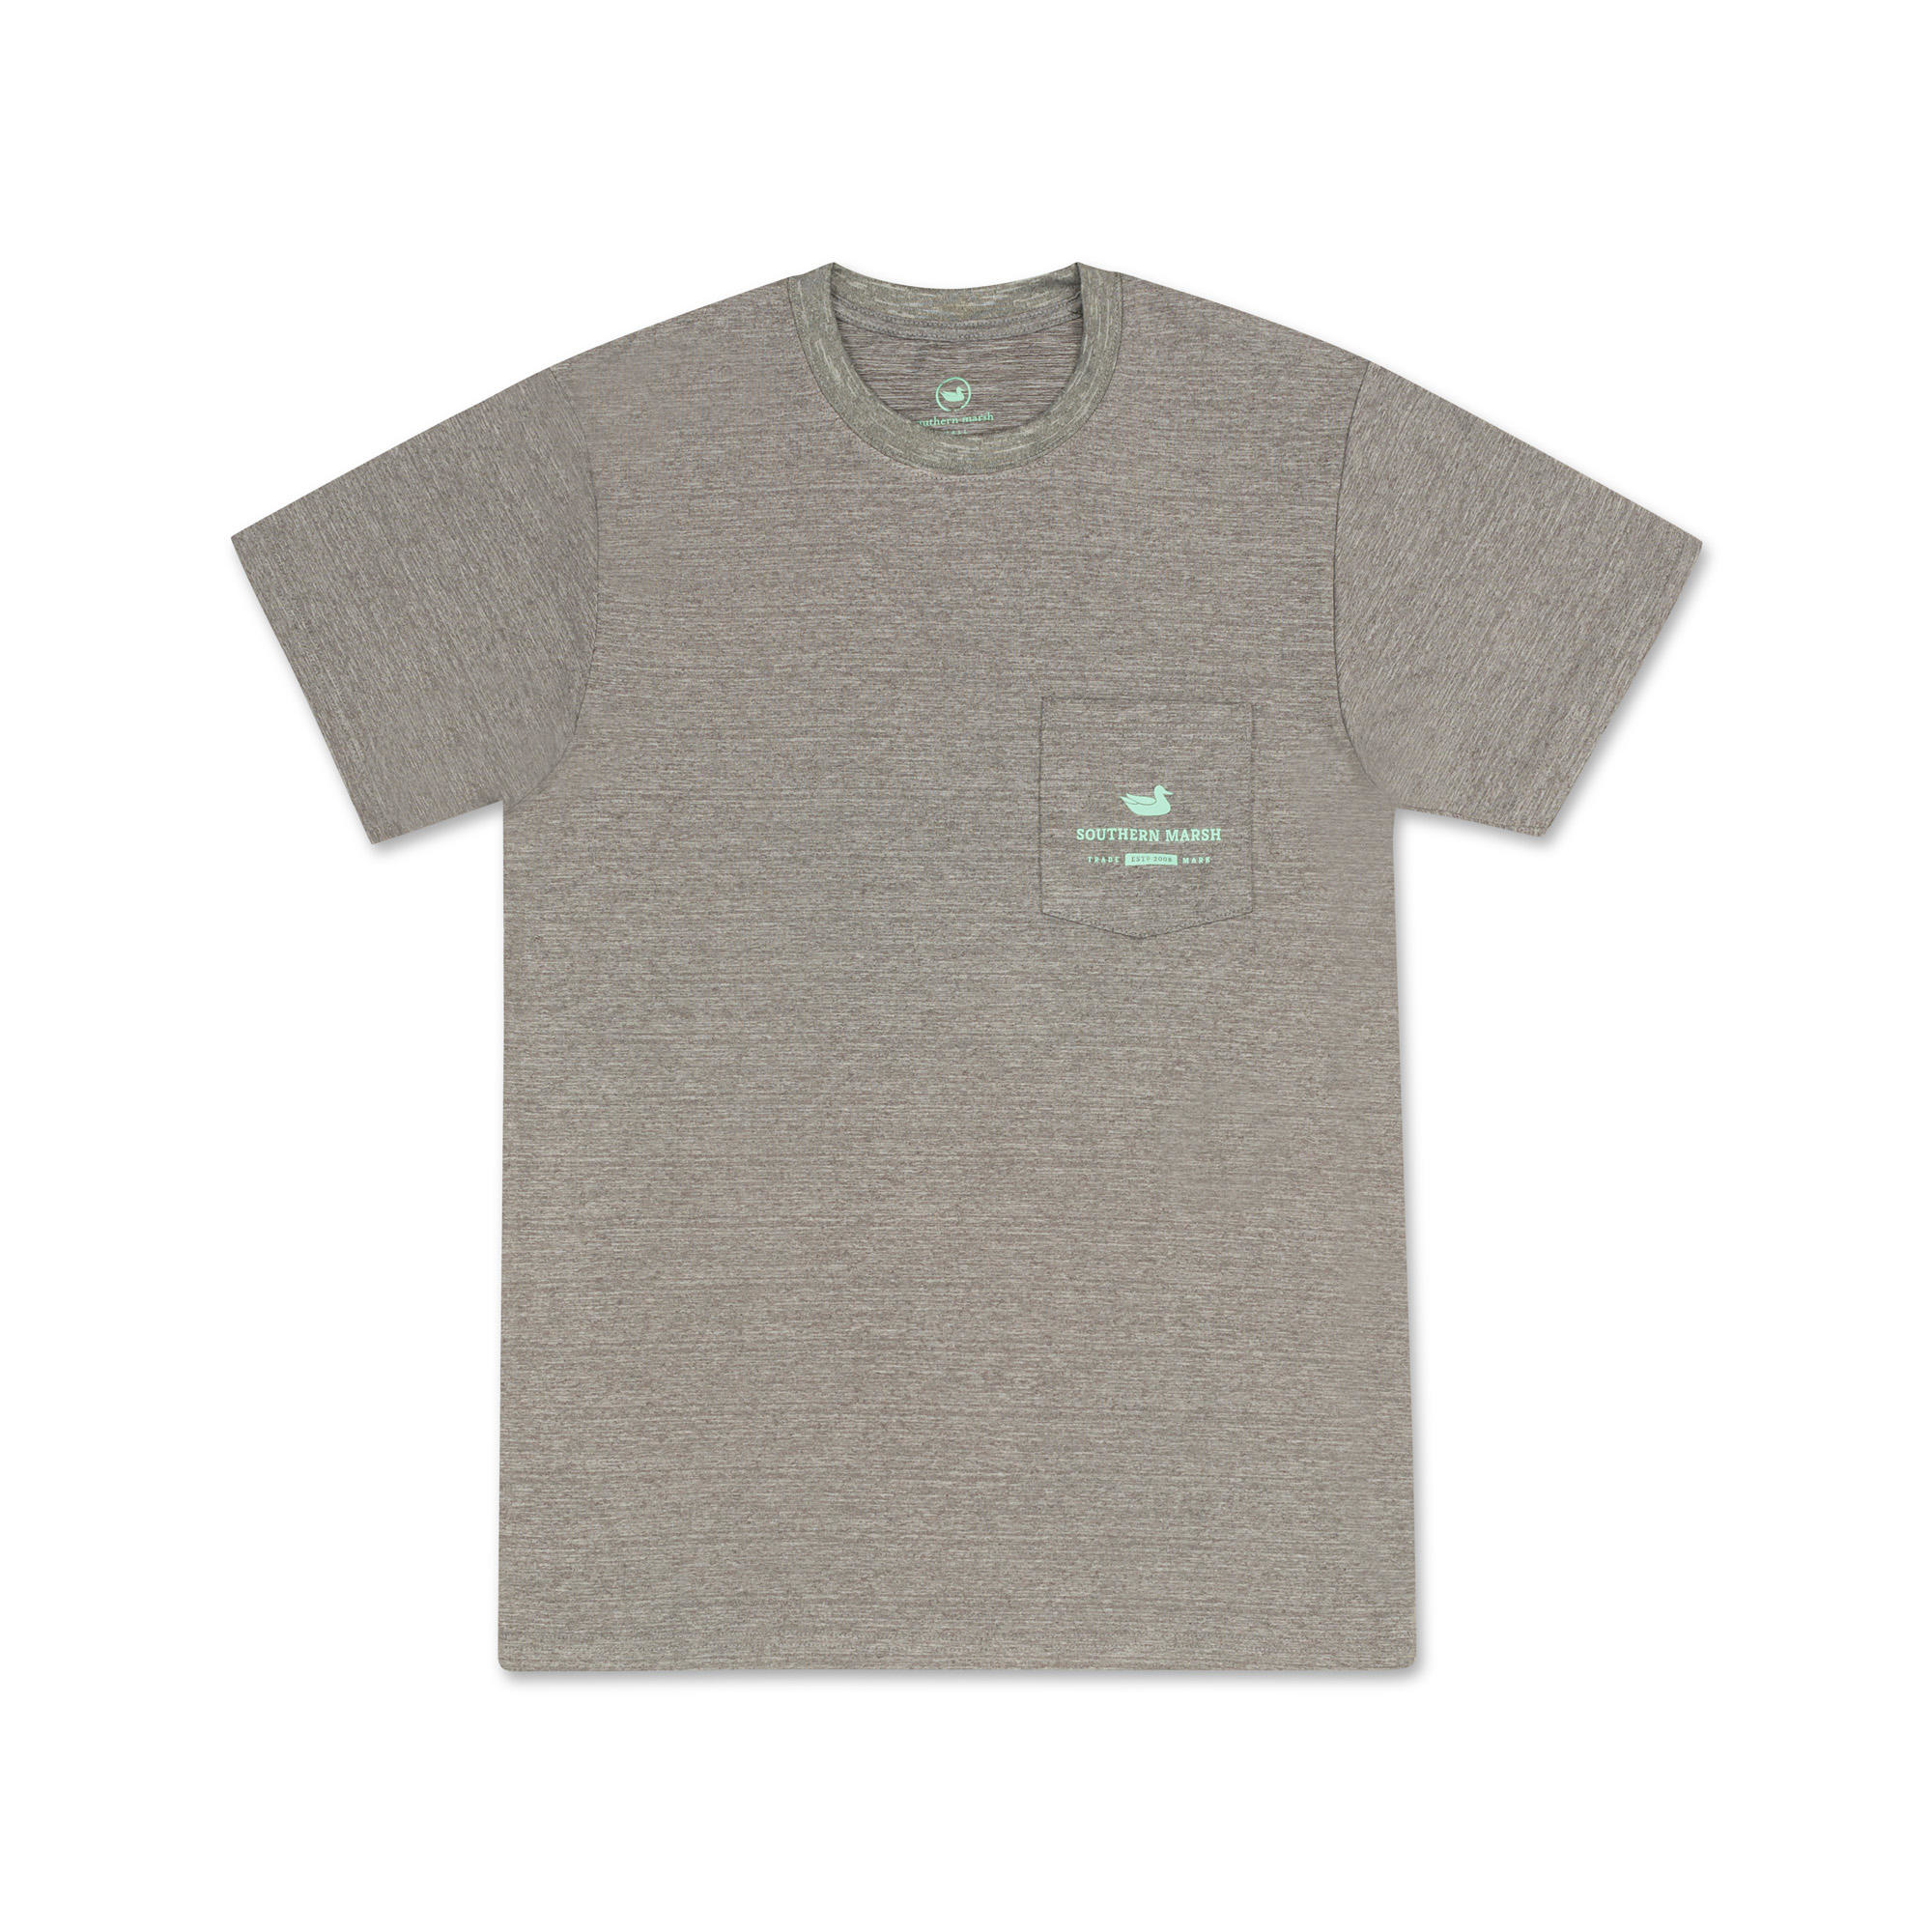 Southern Marsh FieldTec™ Heathered Tee - Spoon